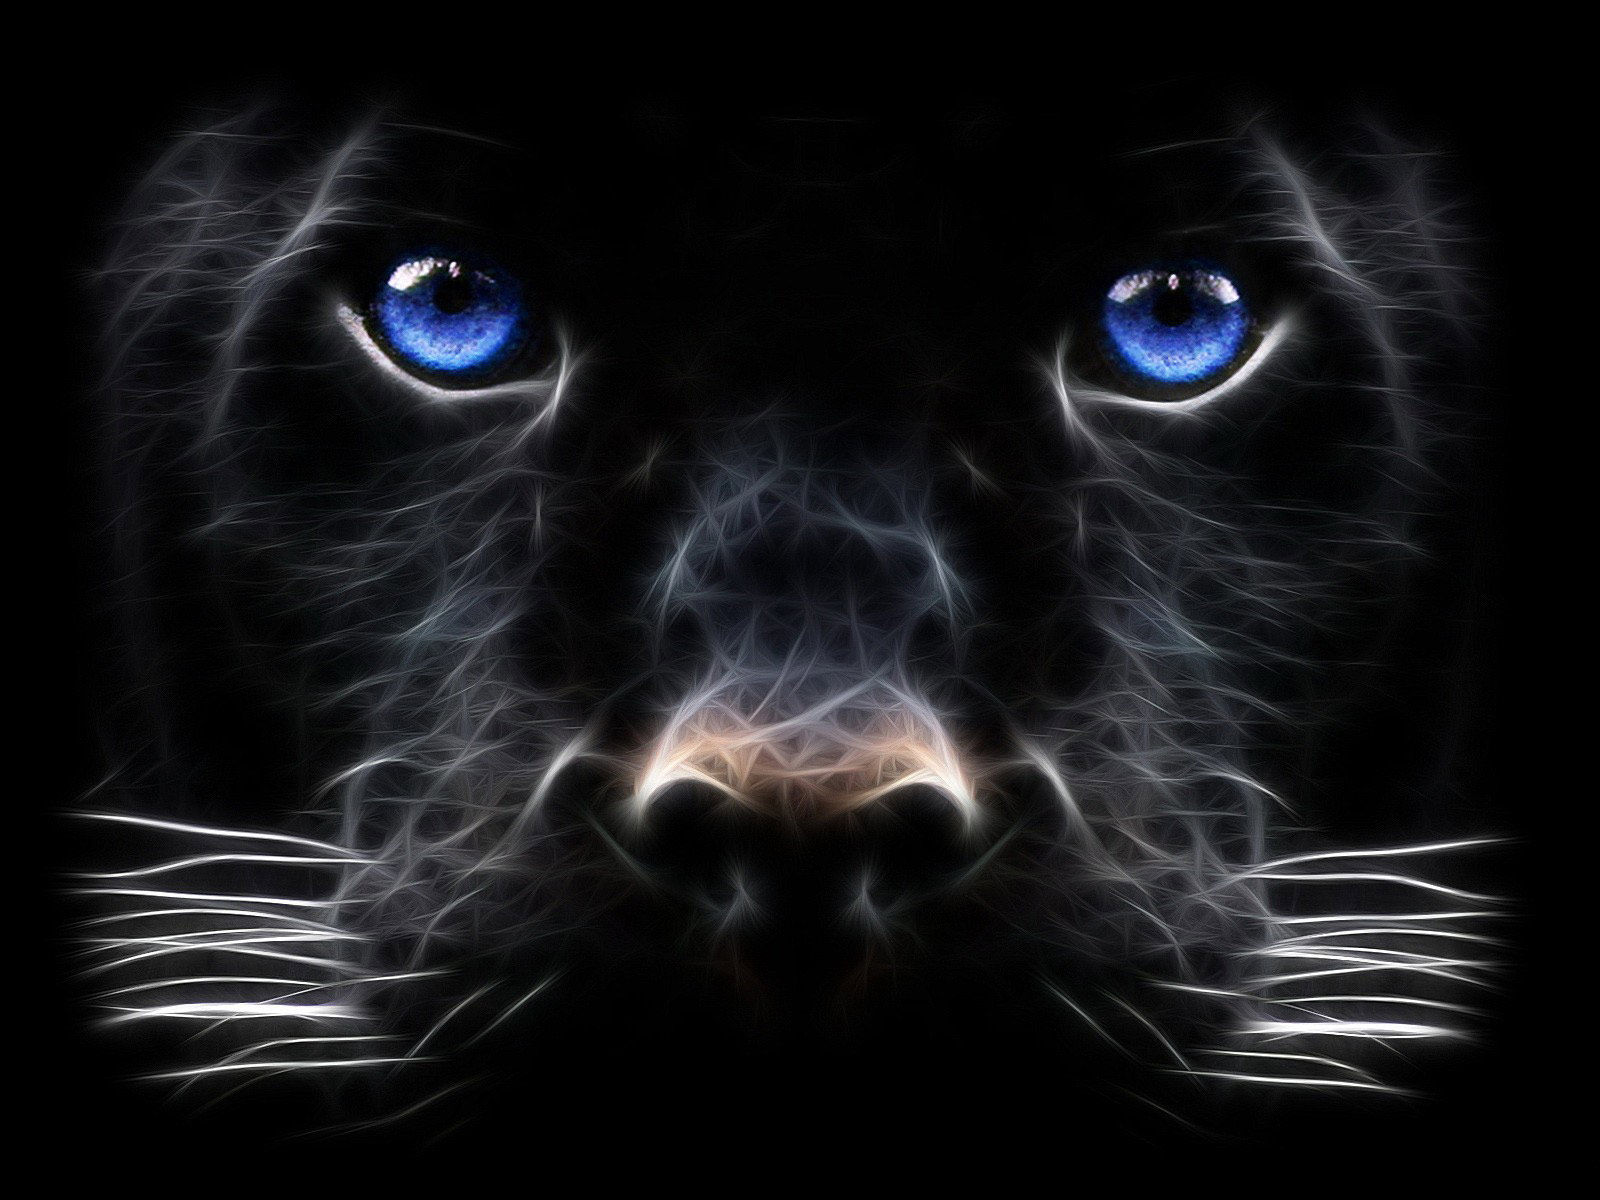 http://1.bp.blogspot.com/-13TFqsE0cjQ/TxGfV-ZgrCI/AAAAAAAAAUs/4GU9xTMf6Qs/s1600/black+cat+wallpapers+in+hd.jpg